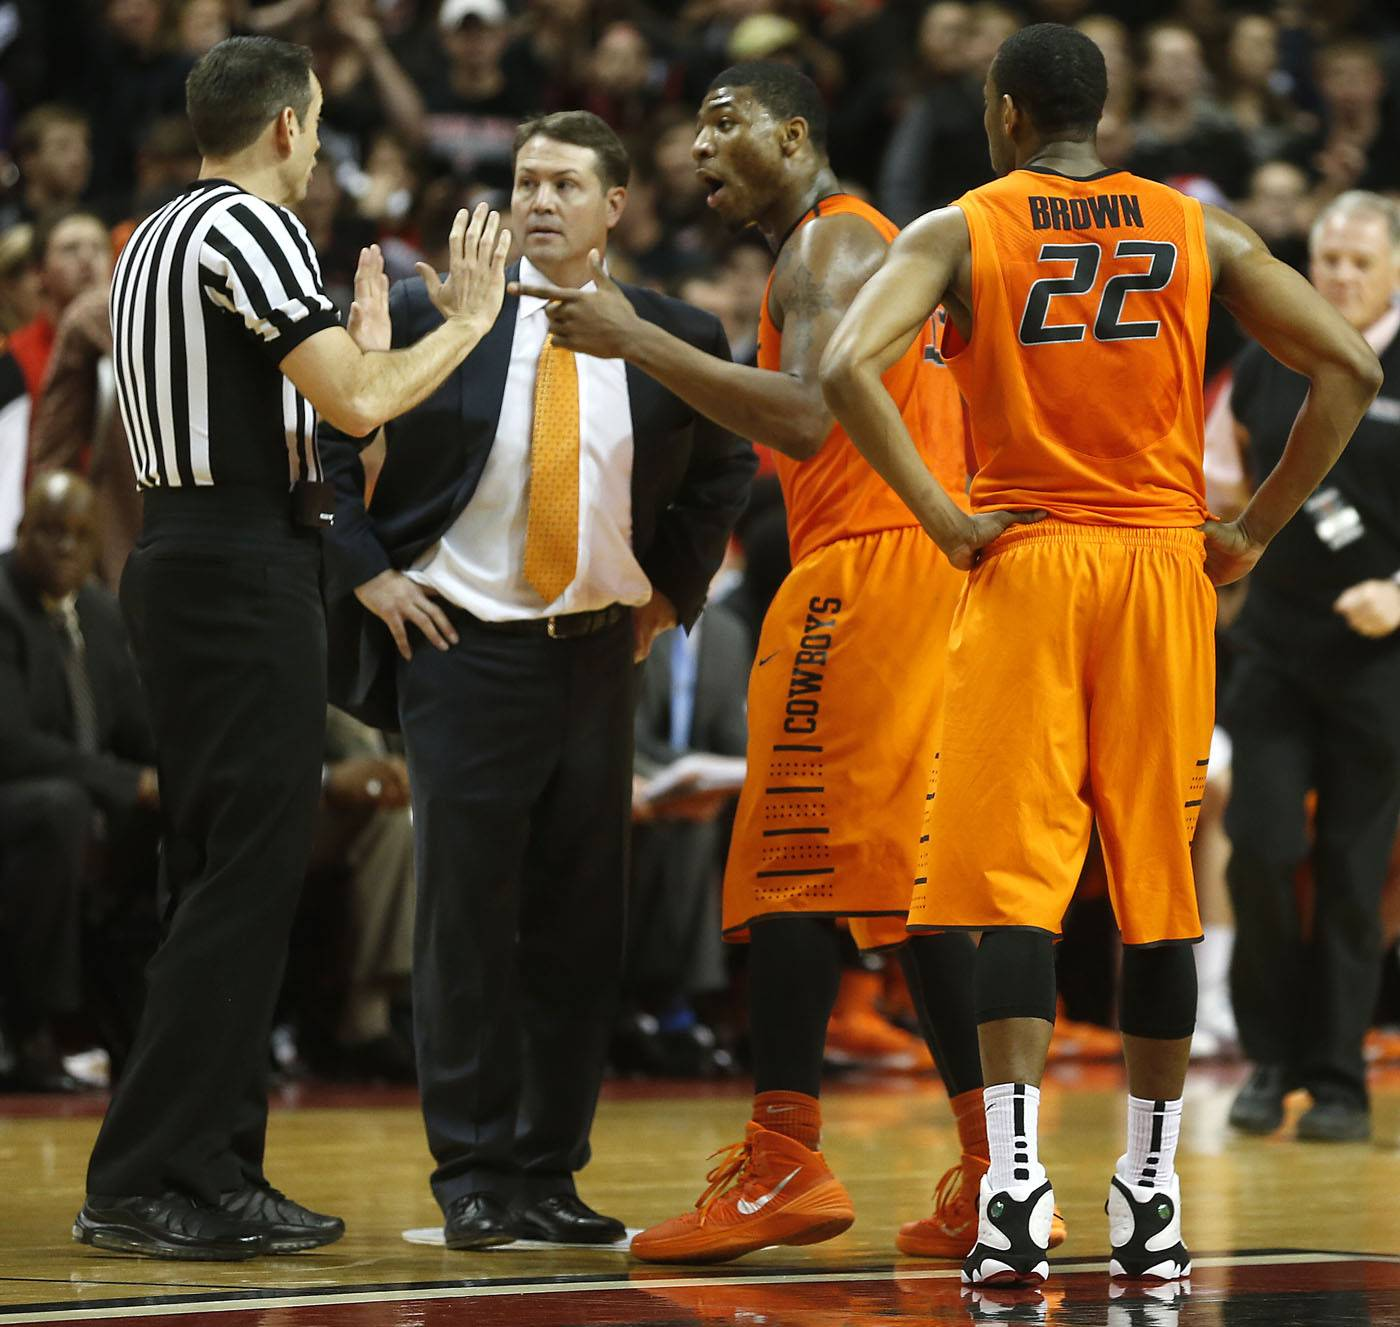 Associated PressOklahoma State head coach Travis Ford, center, Marcus Smart and Markel Brown(22) speak to the referee after Smart shoved a fan Saturday during a NCAA college basketball game in Lubbock, Texas.